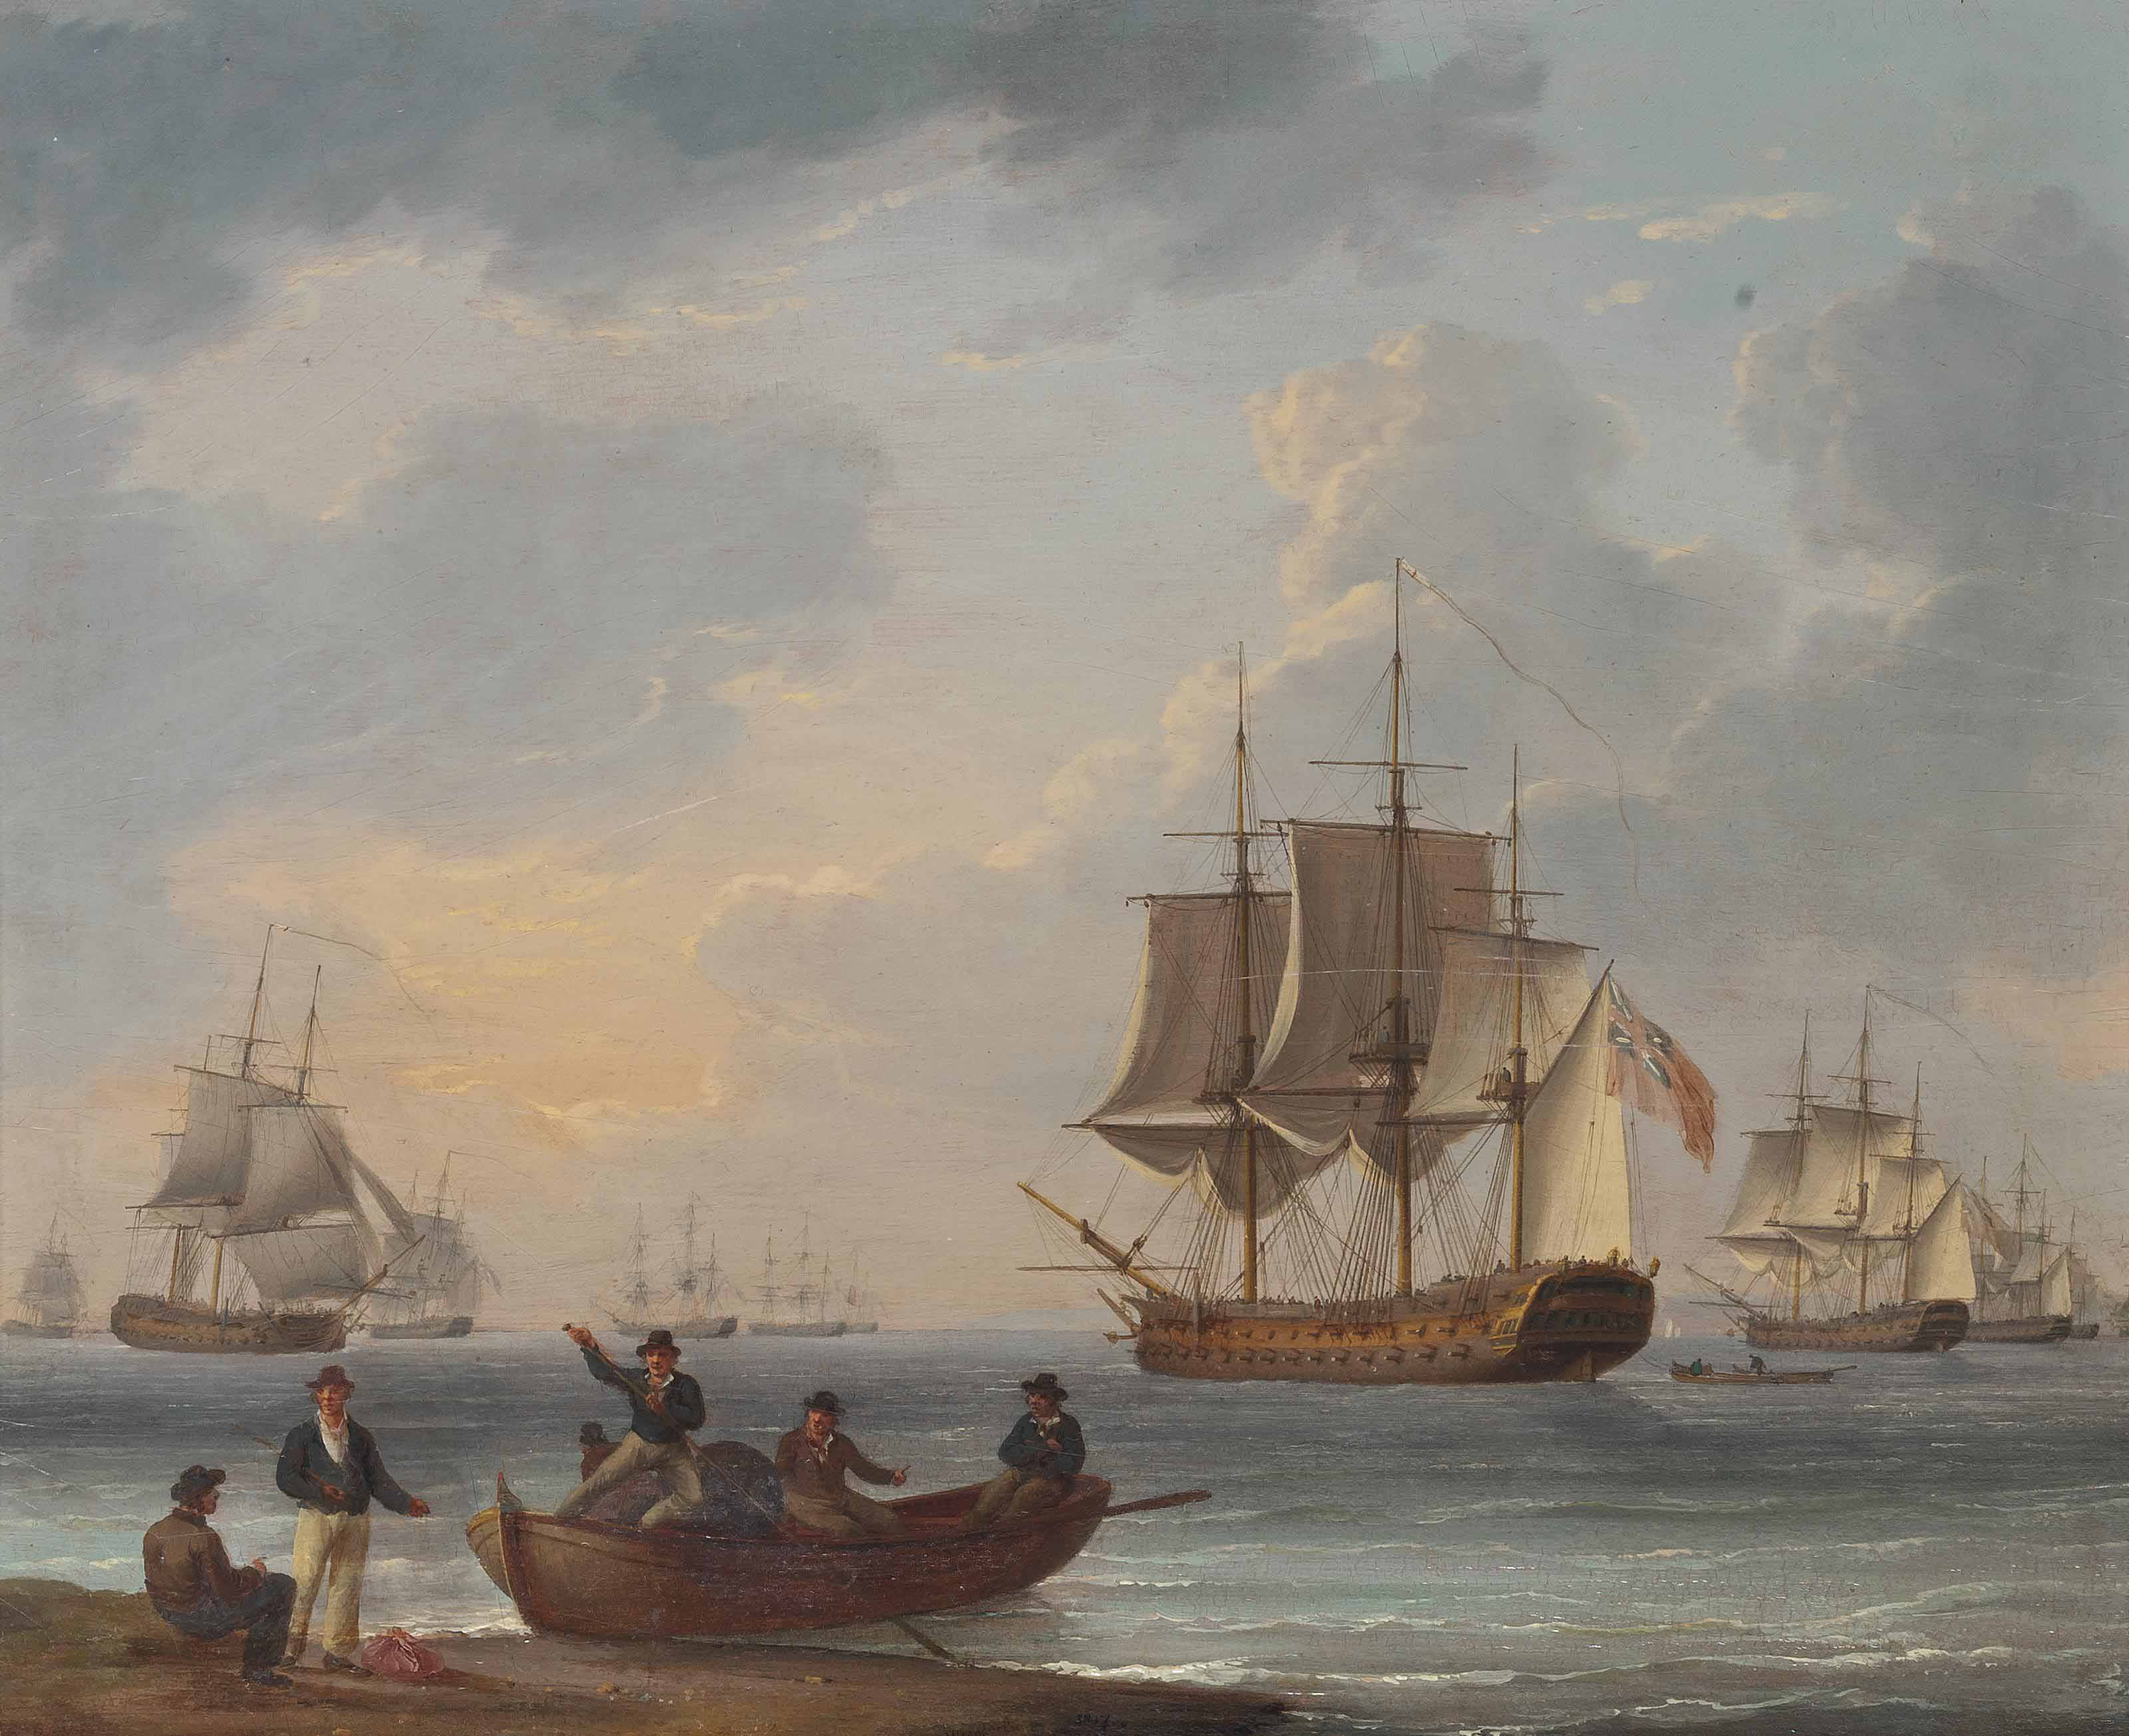 Sailors pushing off from shore to join the fleet